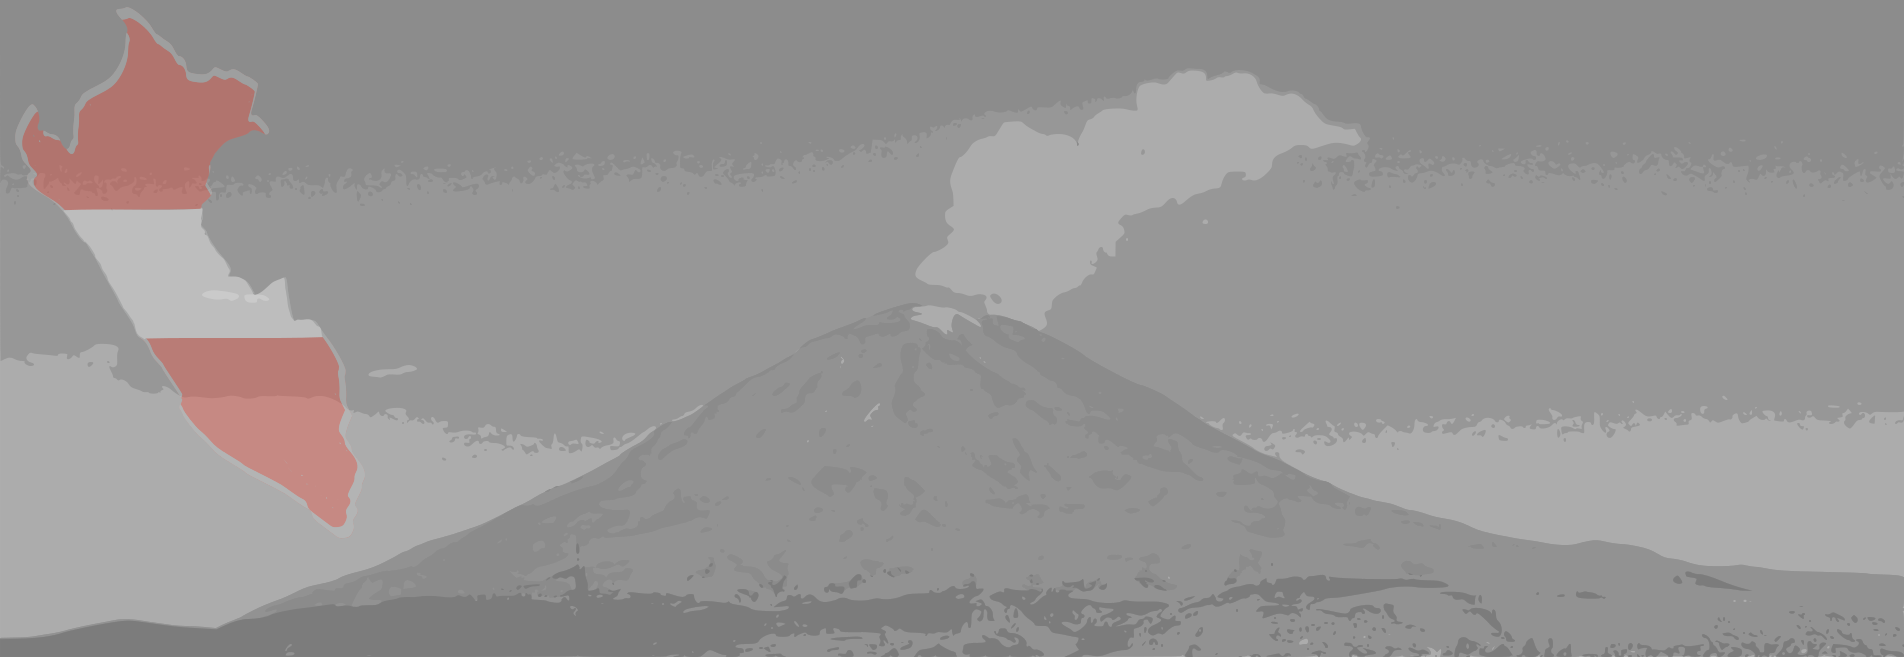 Stratovolcano svg #8, Download drawings